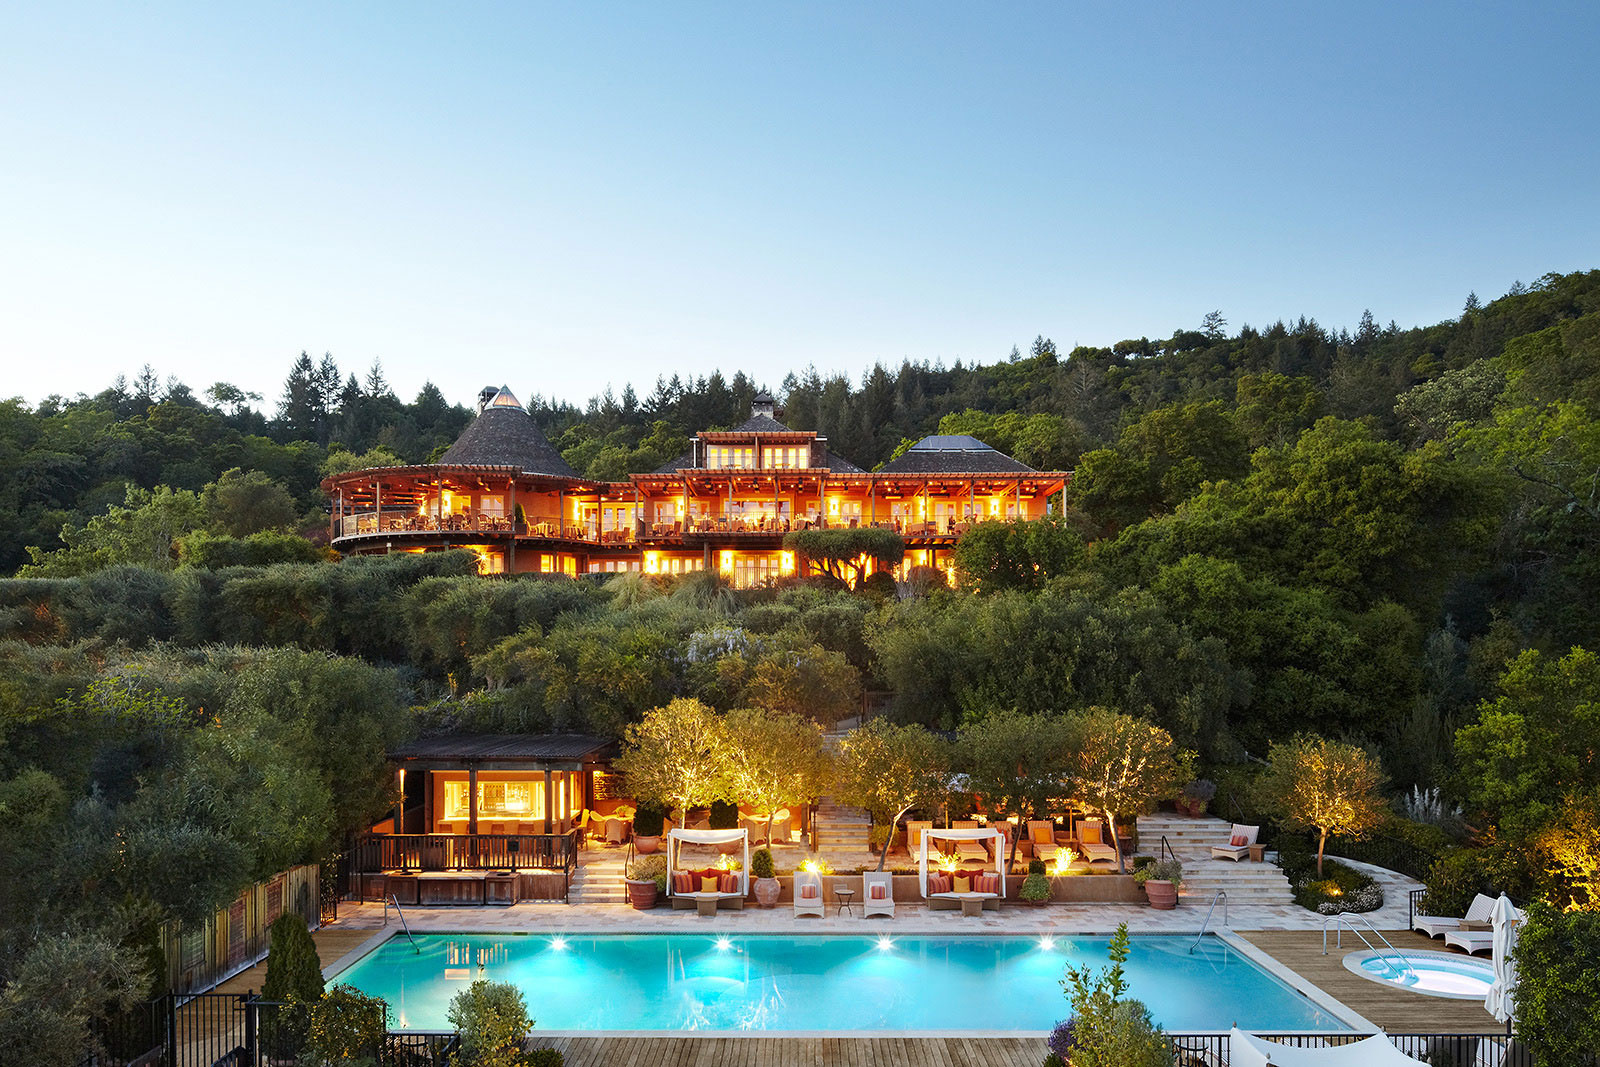 Auberge Du Soleil Resort in Napa Valley,California | Dovis Bird Agency